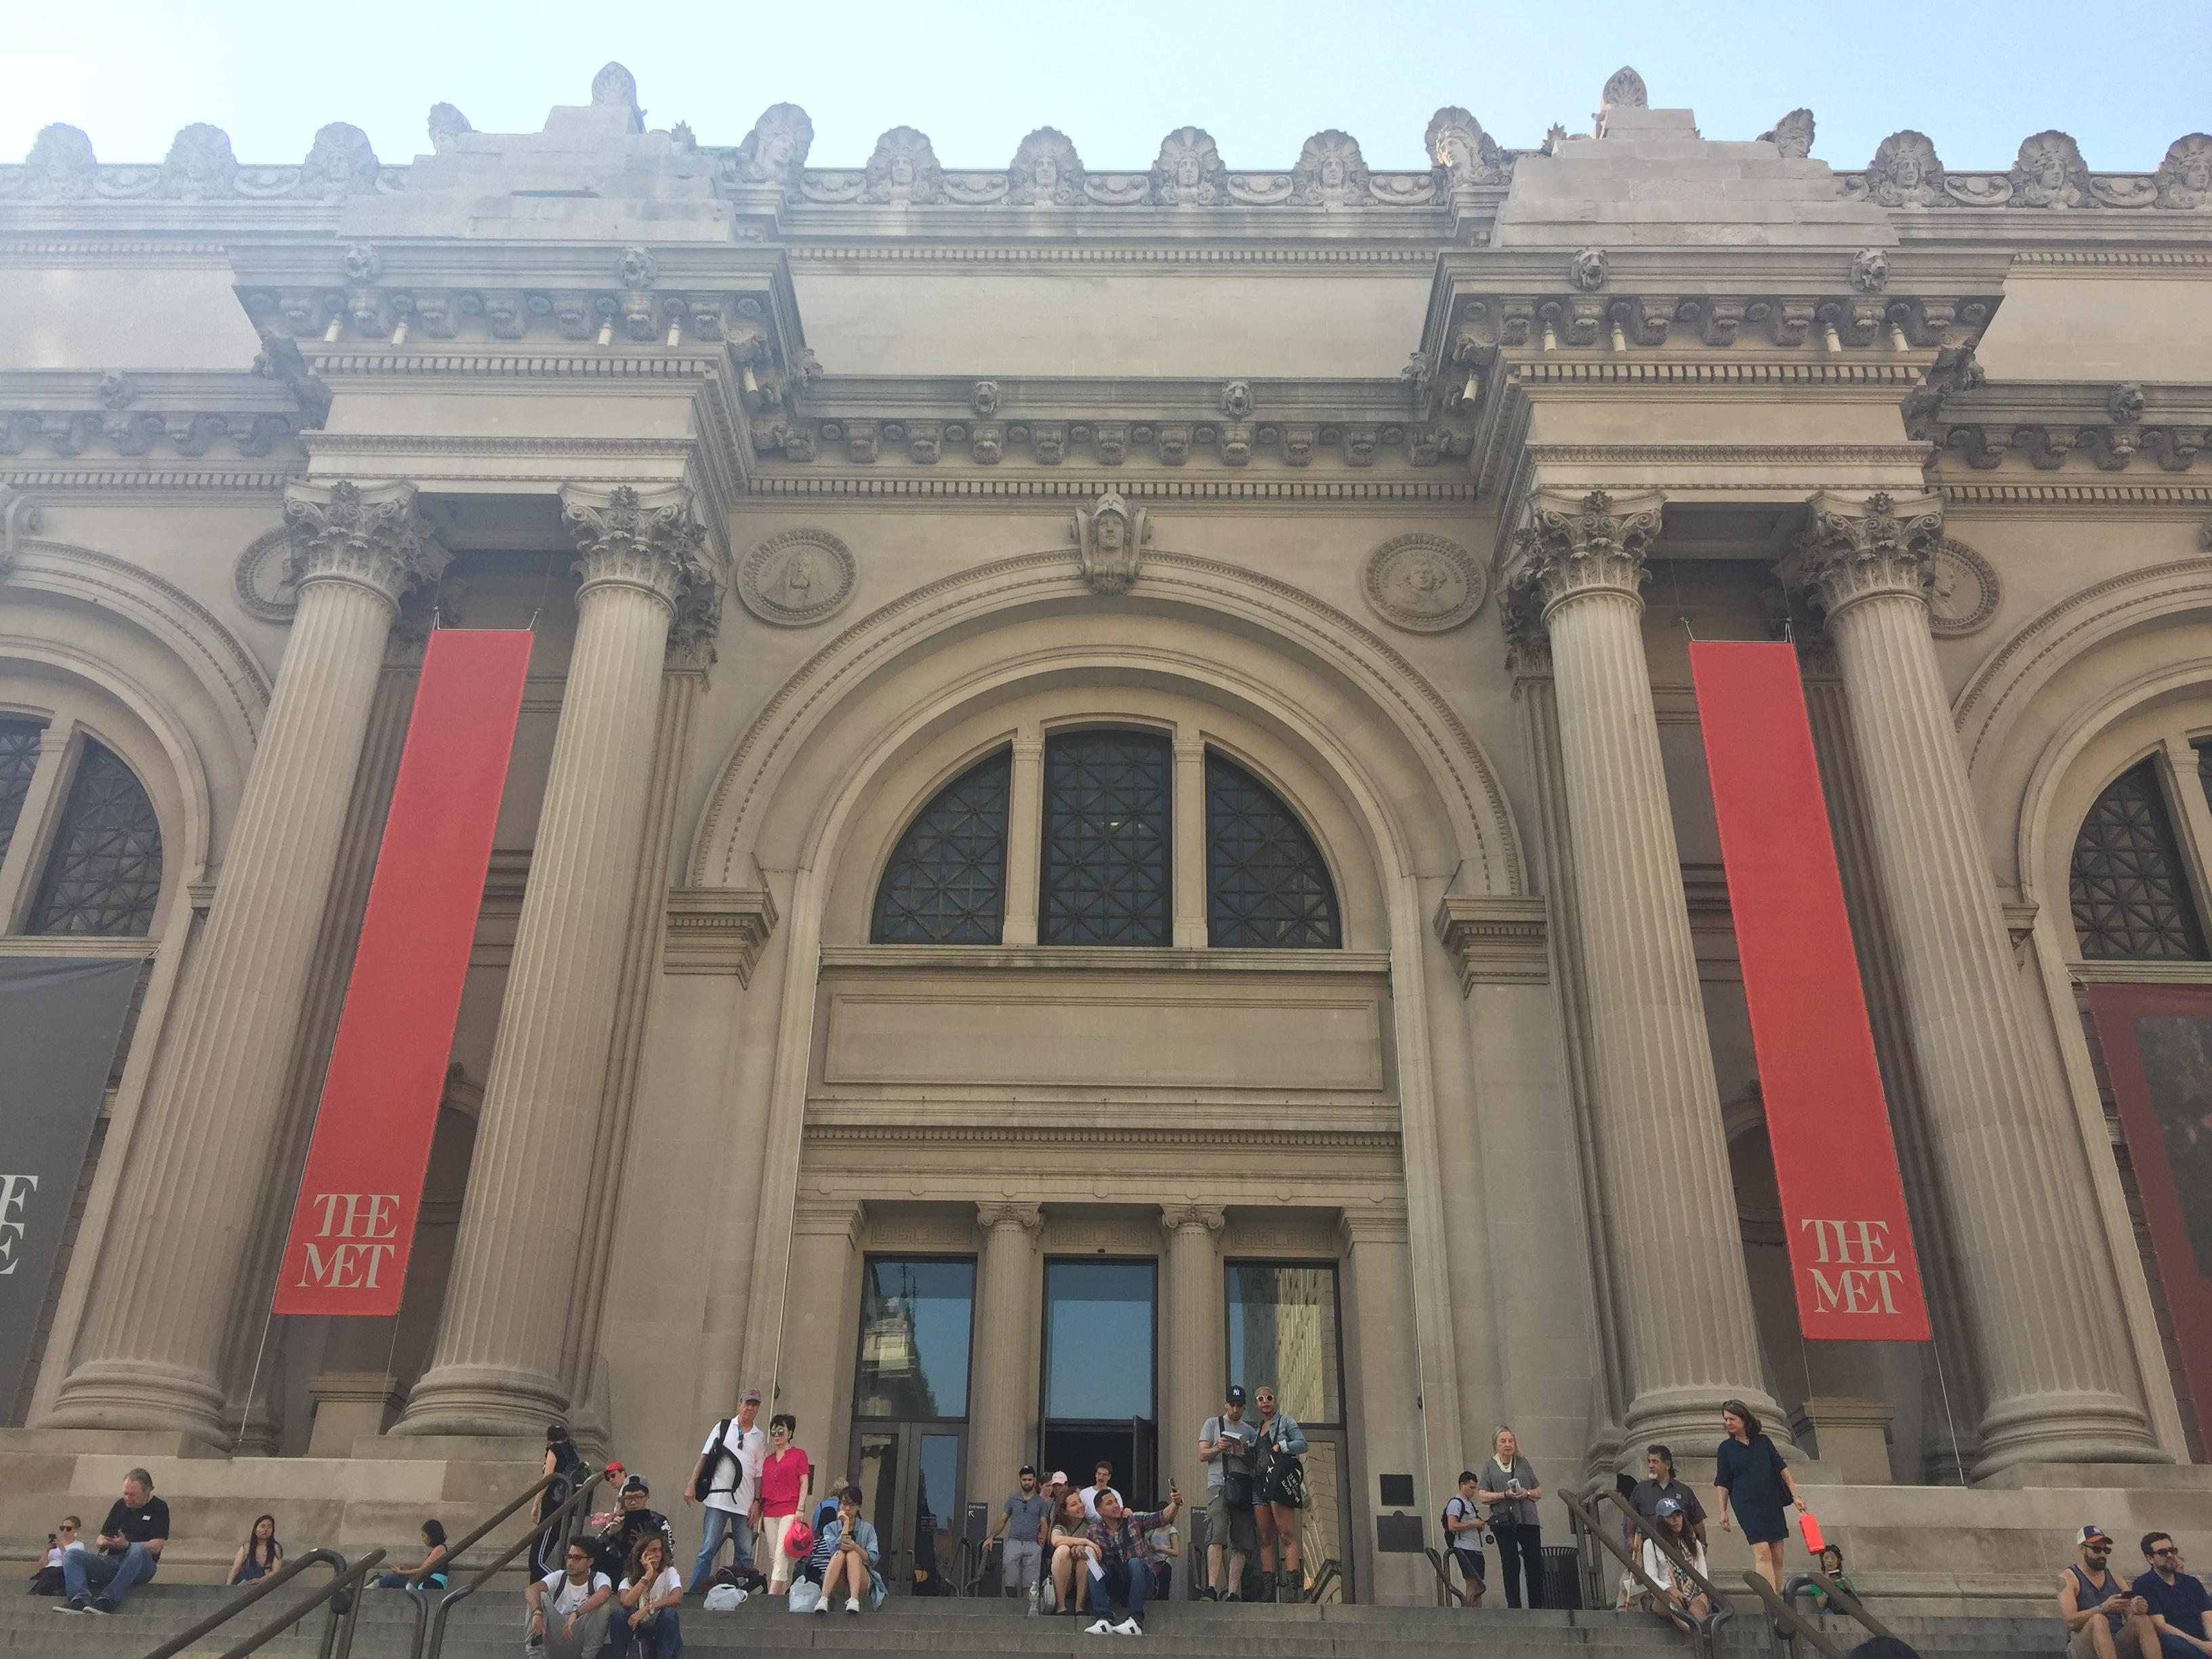 Metropolitan Museum of Art. Open till 5:30 pm Monday to Thursday